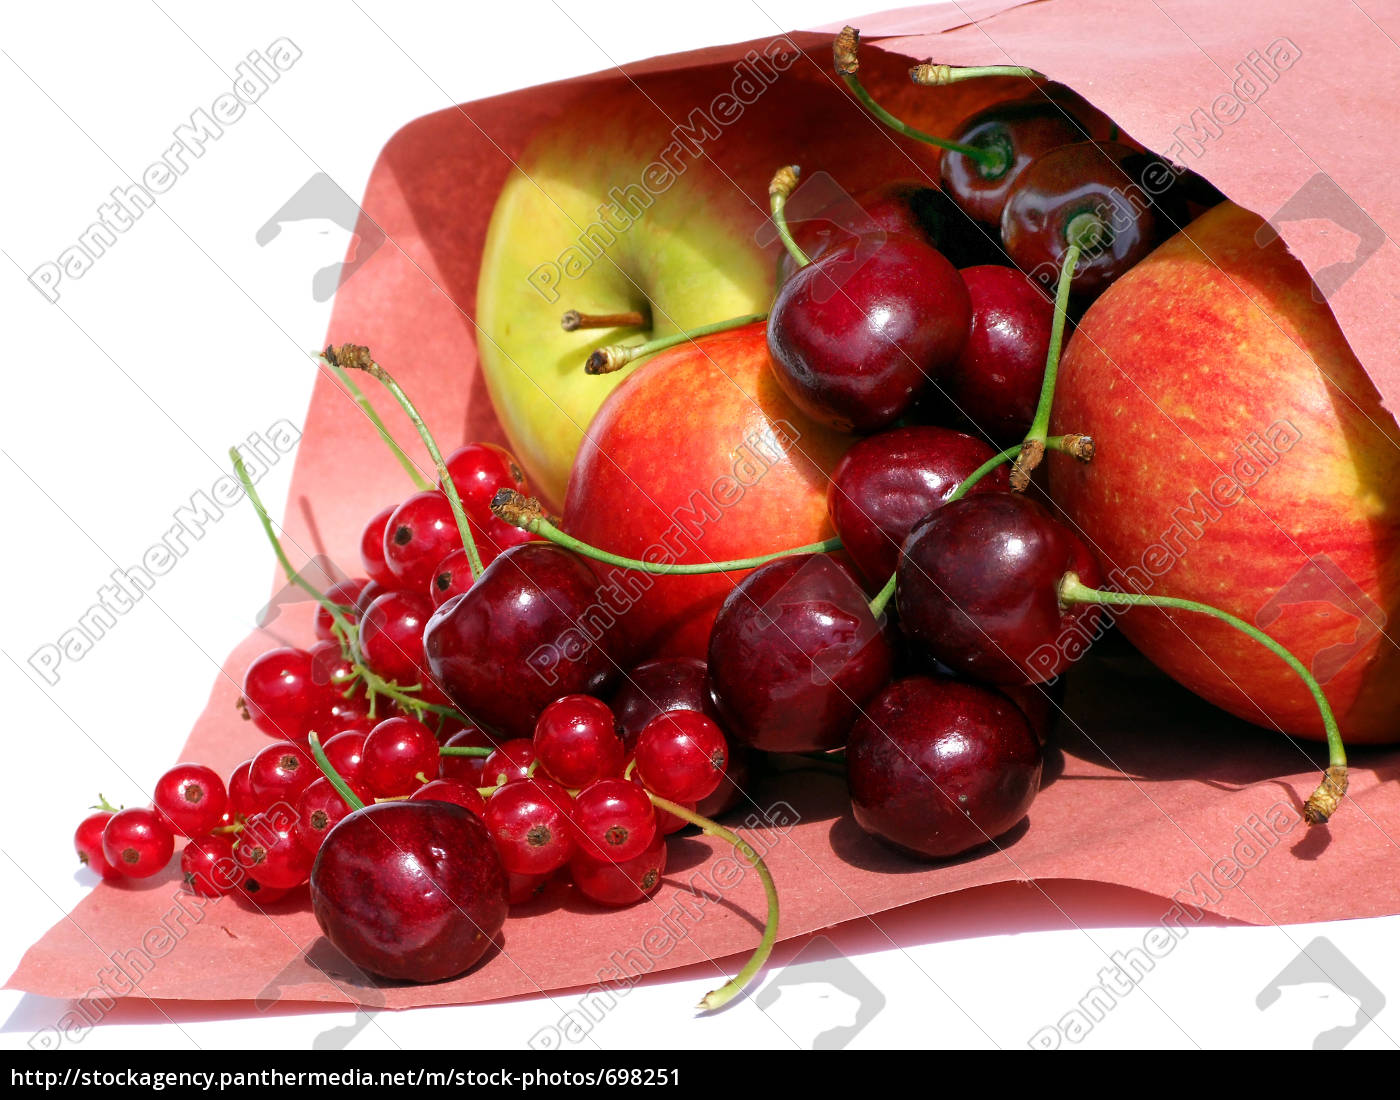 obsttag - 698251